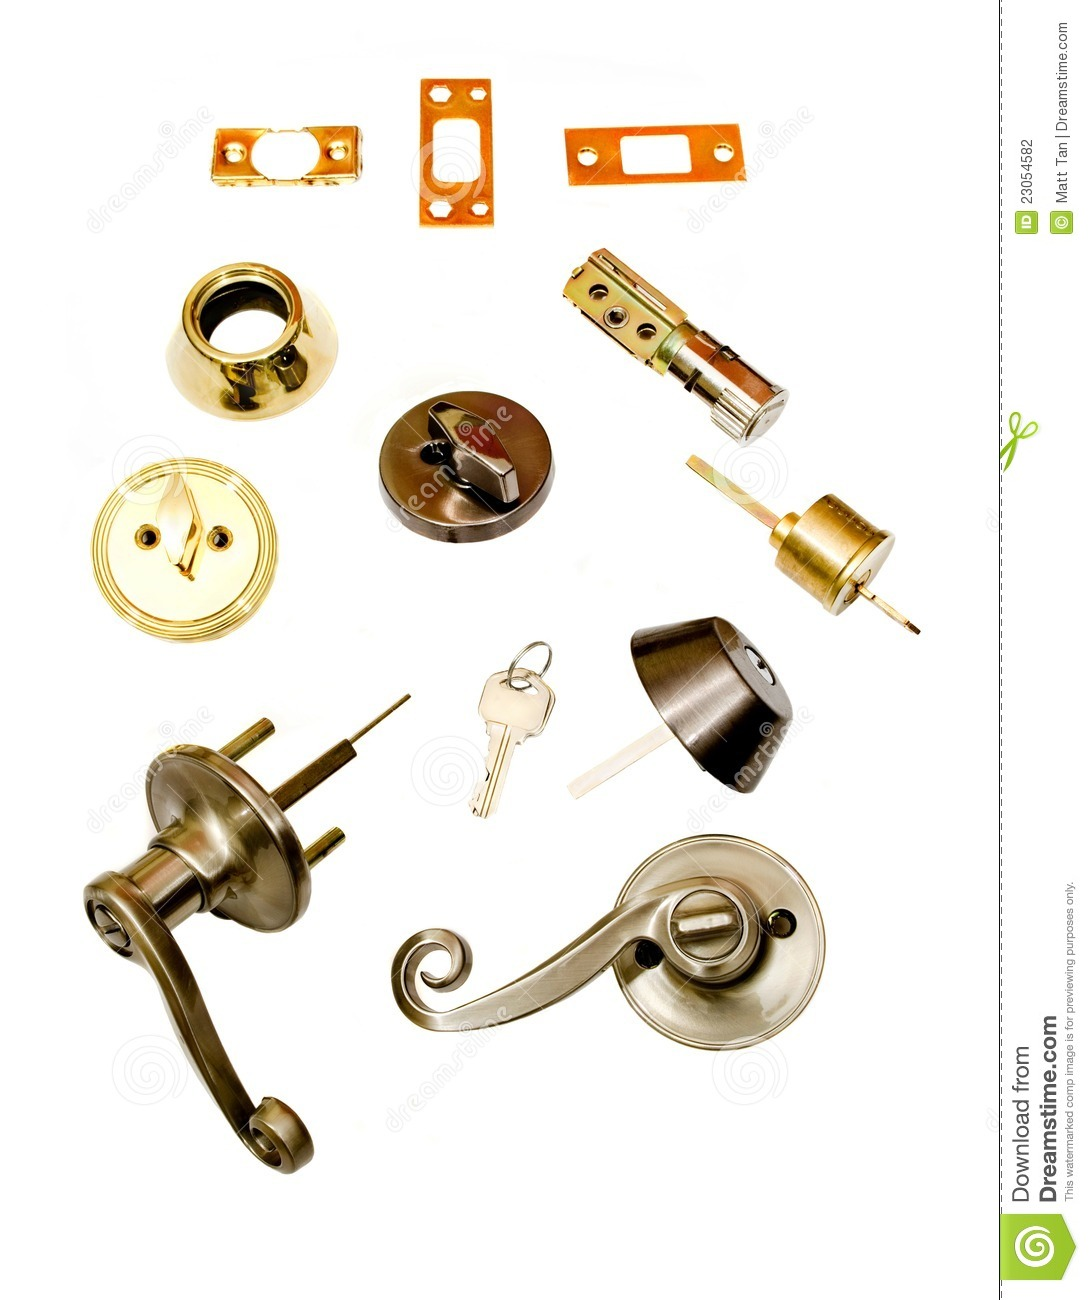 Locksmith Deadbolt Door Locks Installation Parts Stock